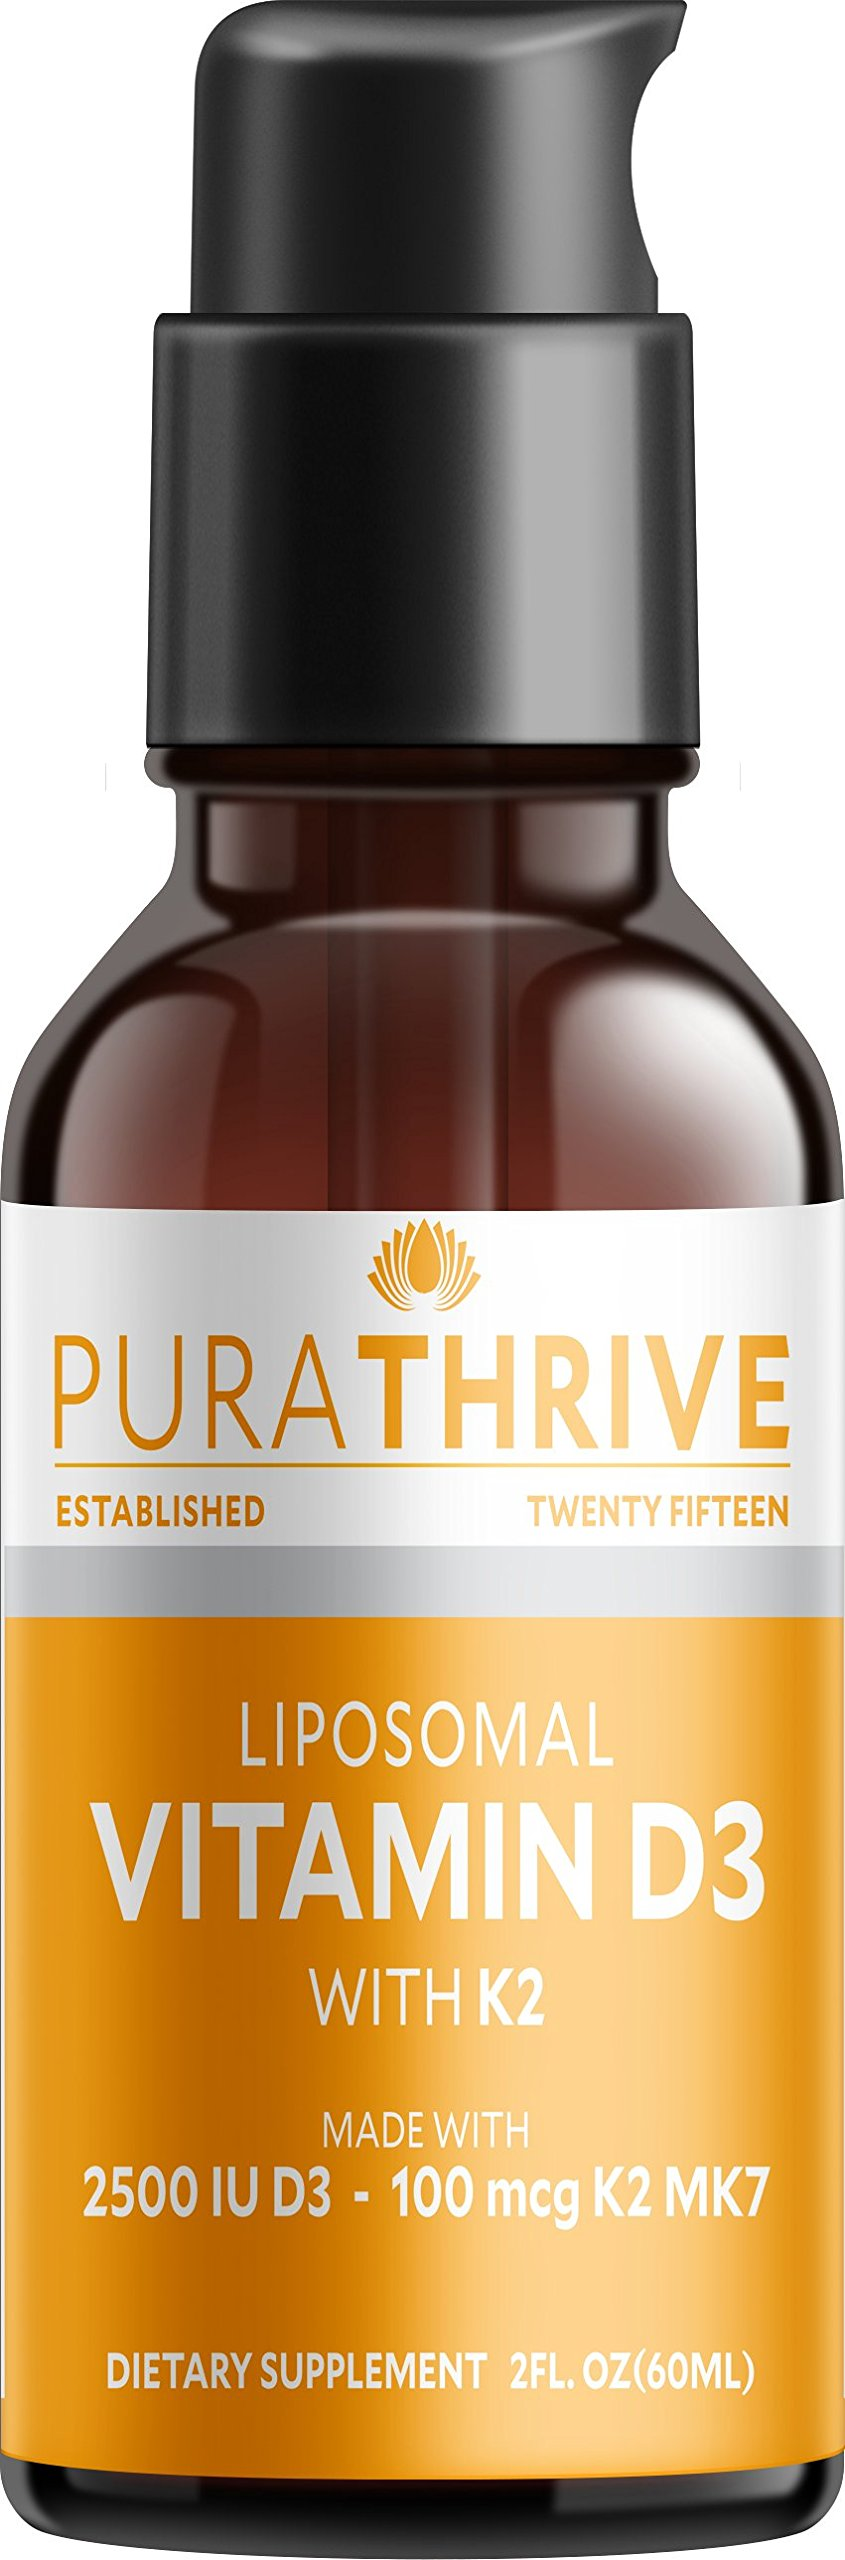 PuraTHRIVE Liquid Vitamin D3 with K2. High Absorption with True Liposomal Delivery. 2oz. (60ml). GMO Free, Gluten Free, Made in USA. D3 Provides D3 2500iu with K2 100 mcg MK-7. by PURATHRIVE